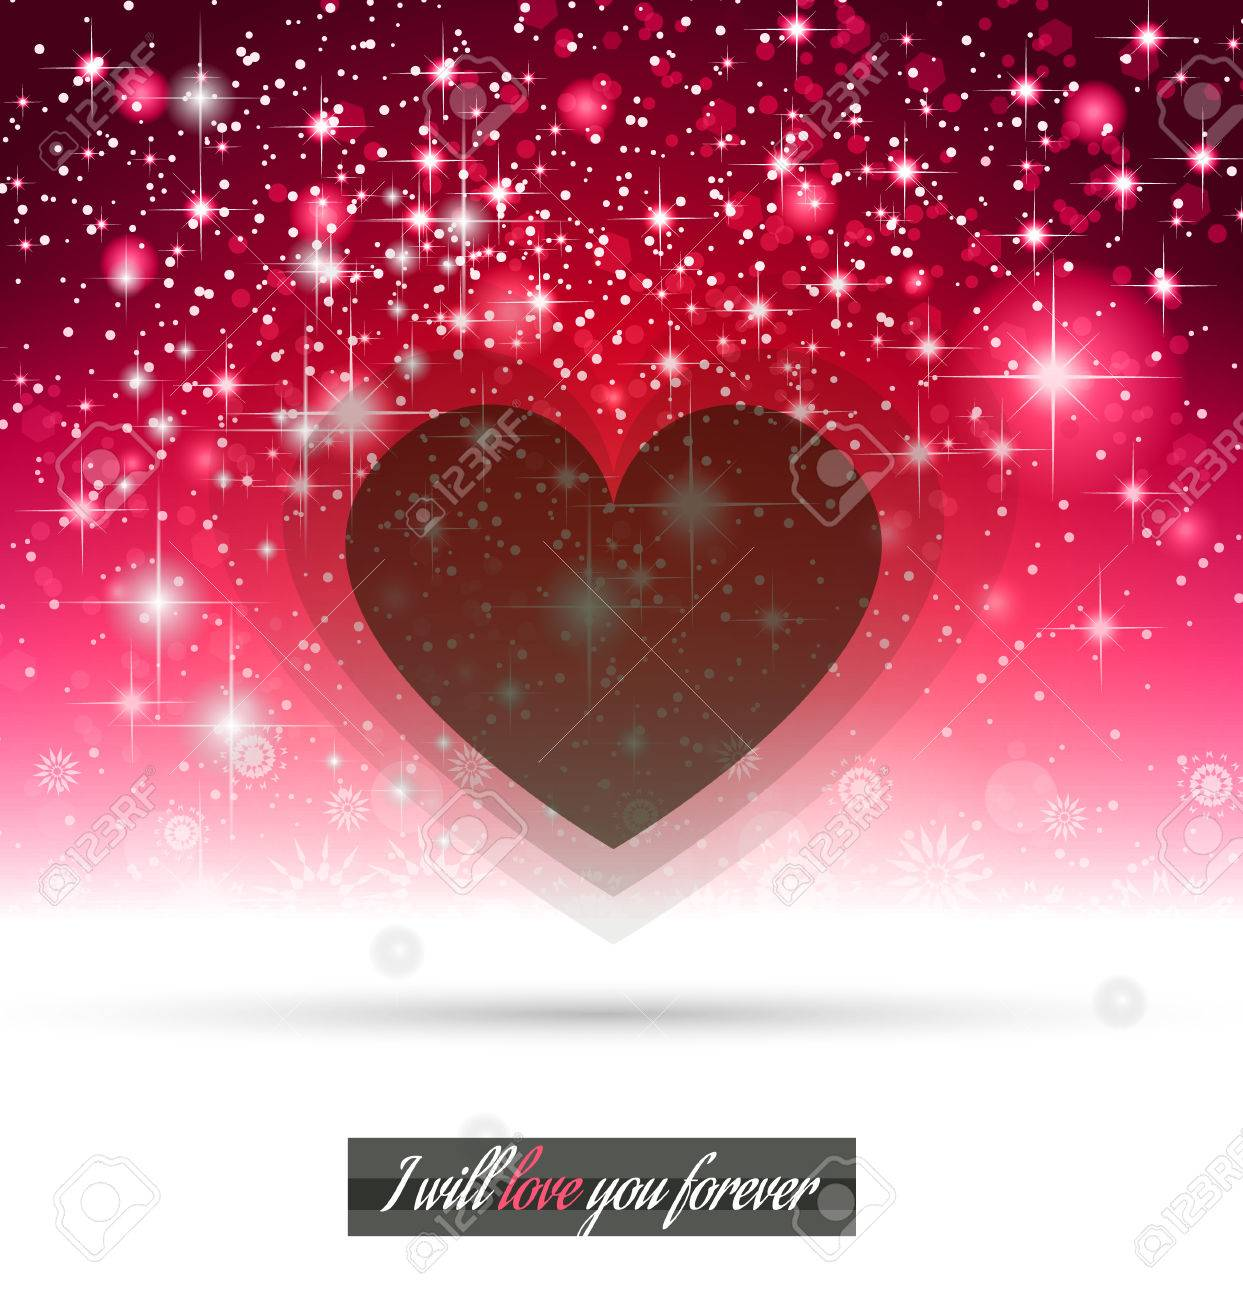 valentines day template with stunning hearts and colors for your flyer backgrounds stock vector - Valentines Day Template